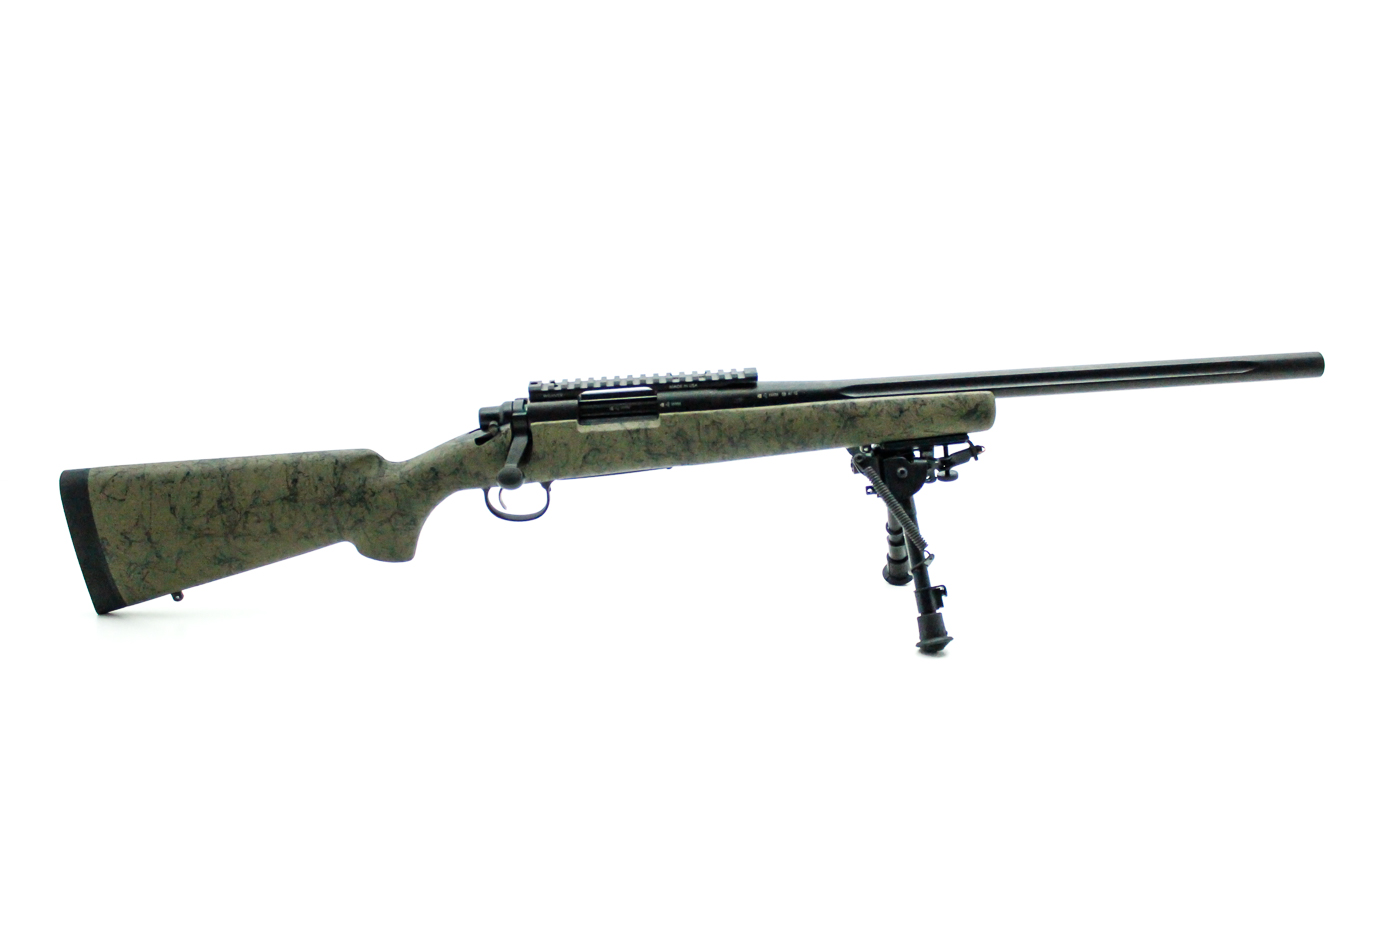 Remington 700 Compact Tactical, .308 Win - Image 1